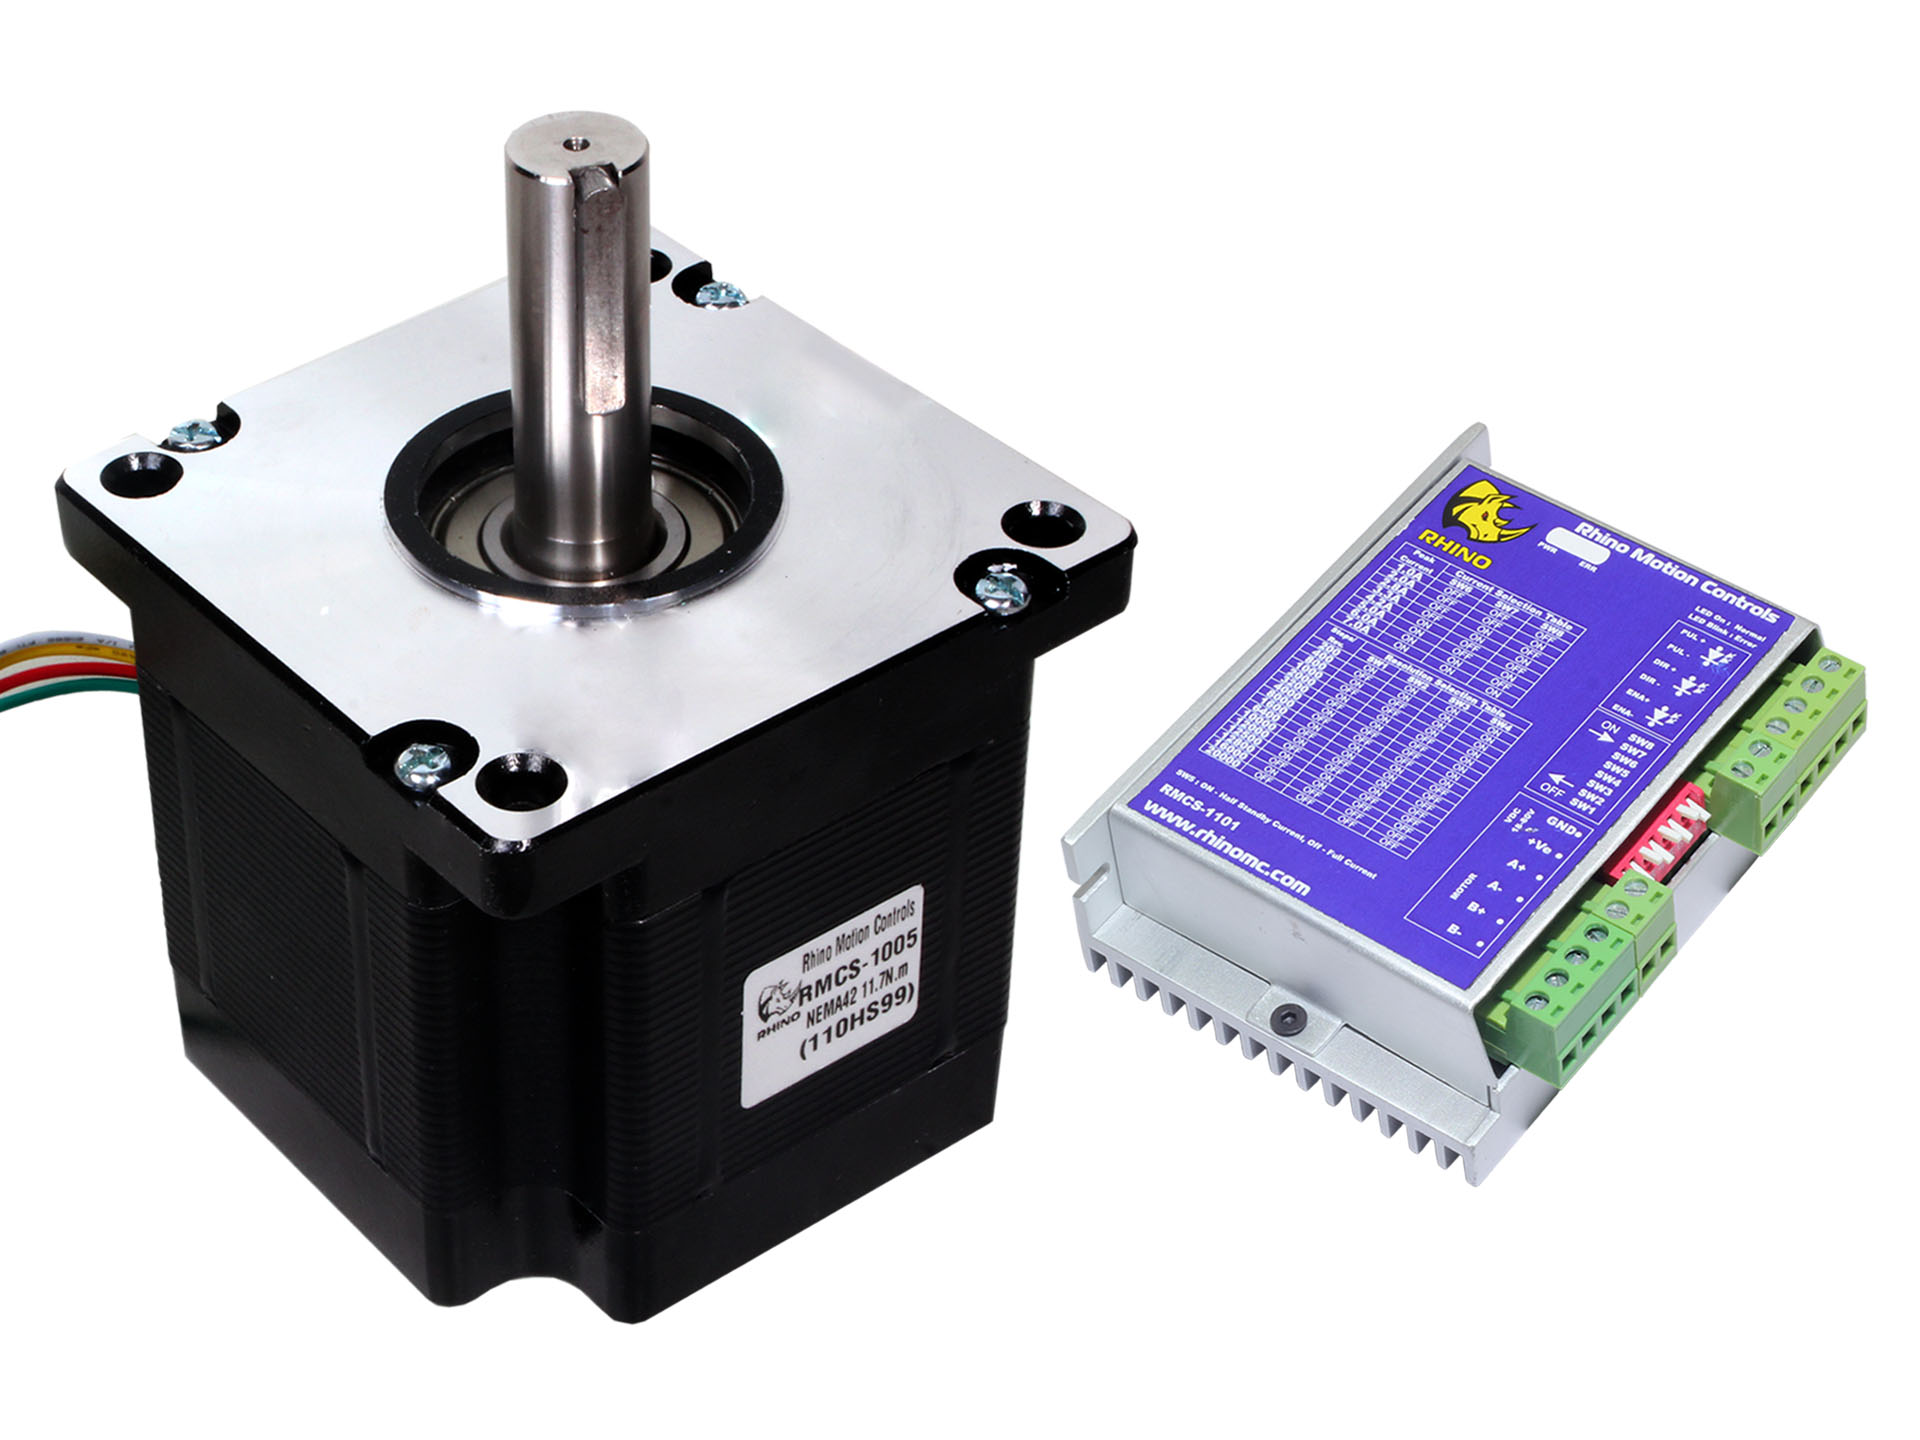 Nema42 Stepper Motor 110kgcm Torque With Rmcs 1101 Drive 1156 Bipolar Circuitdb Ideal For Cnc Machines And Other Machinery Standard Frame Size Configuration Works Well